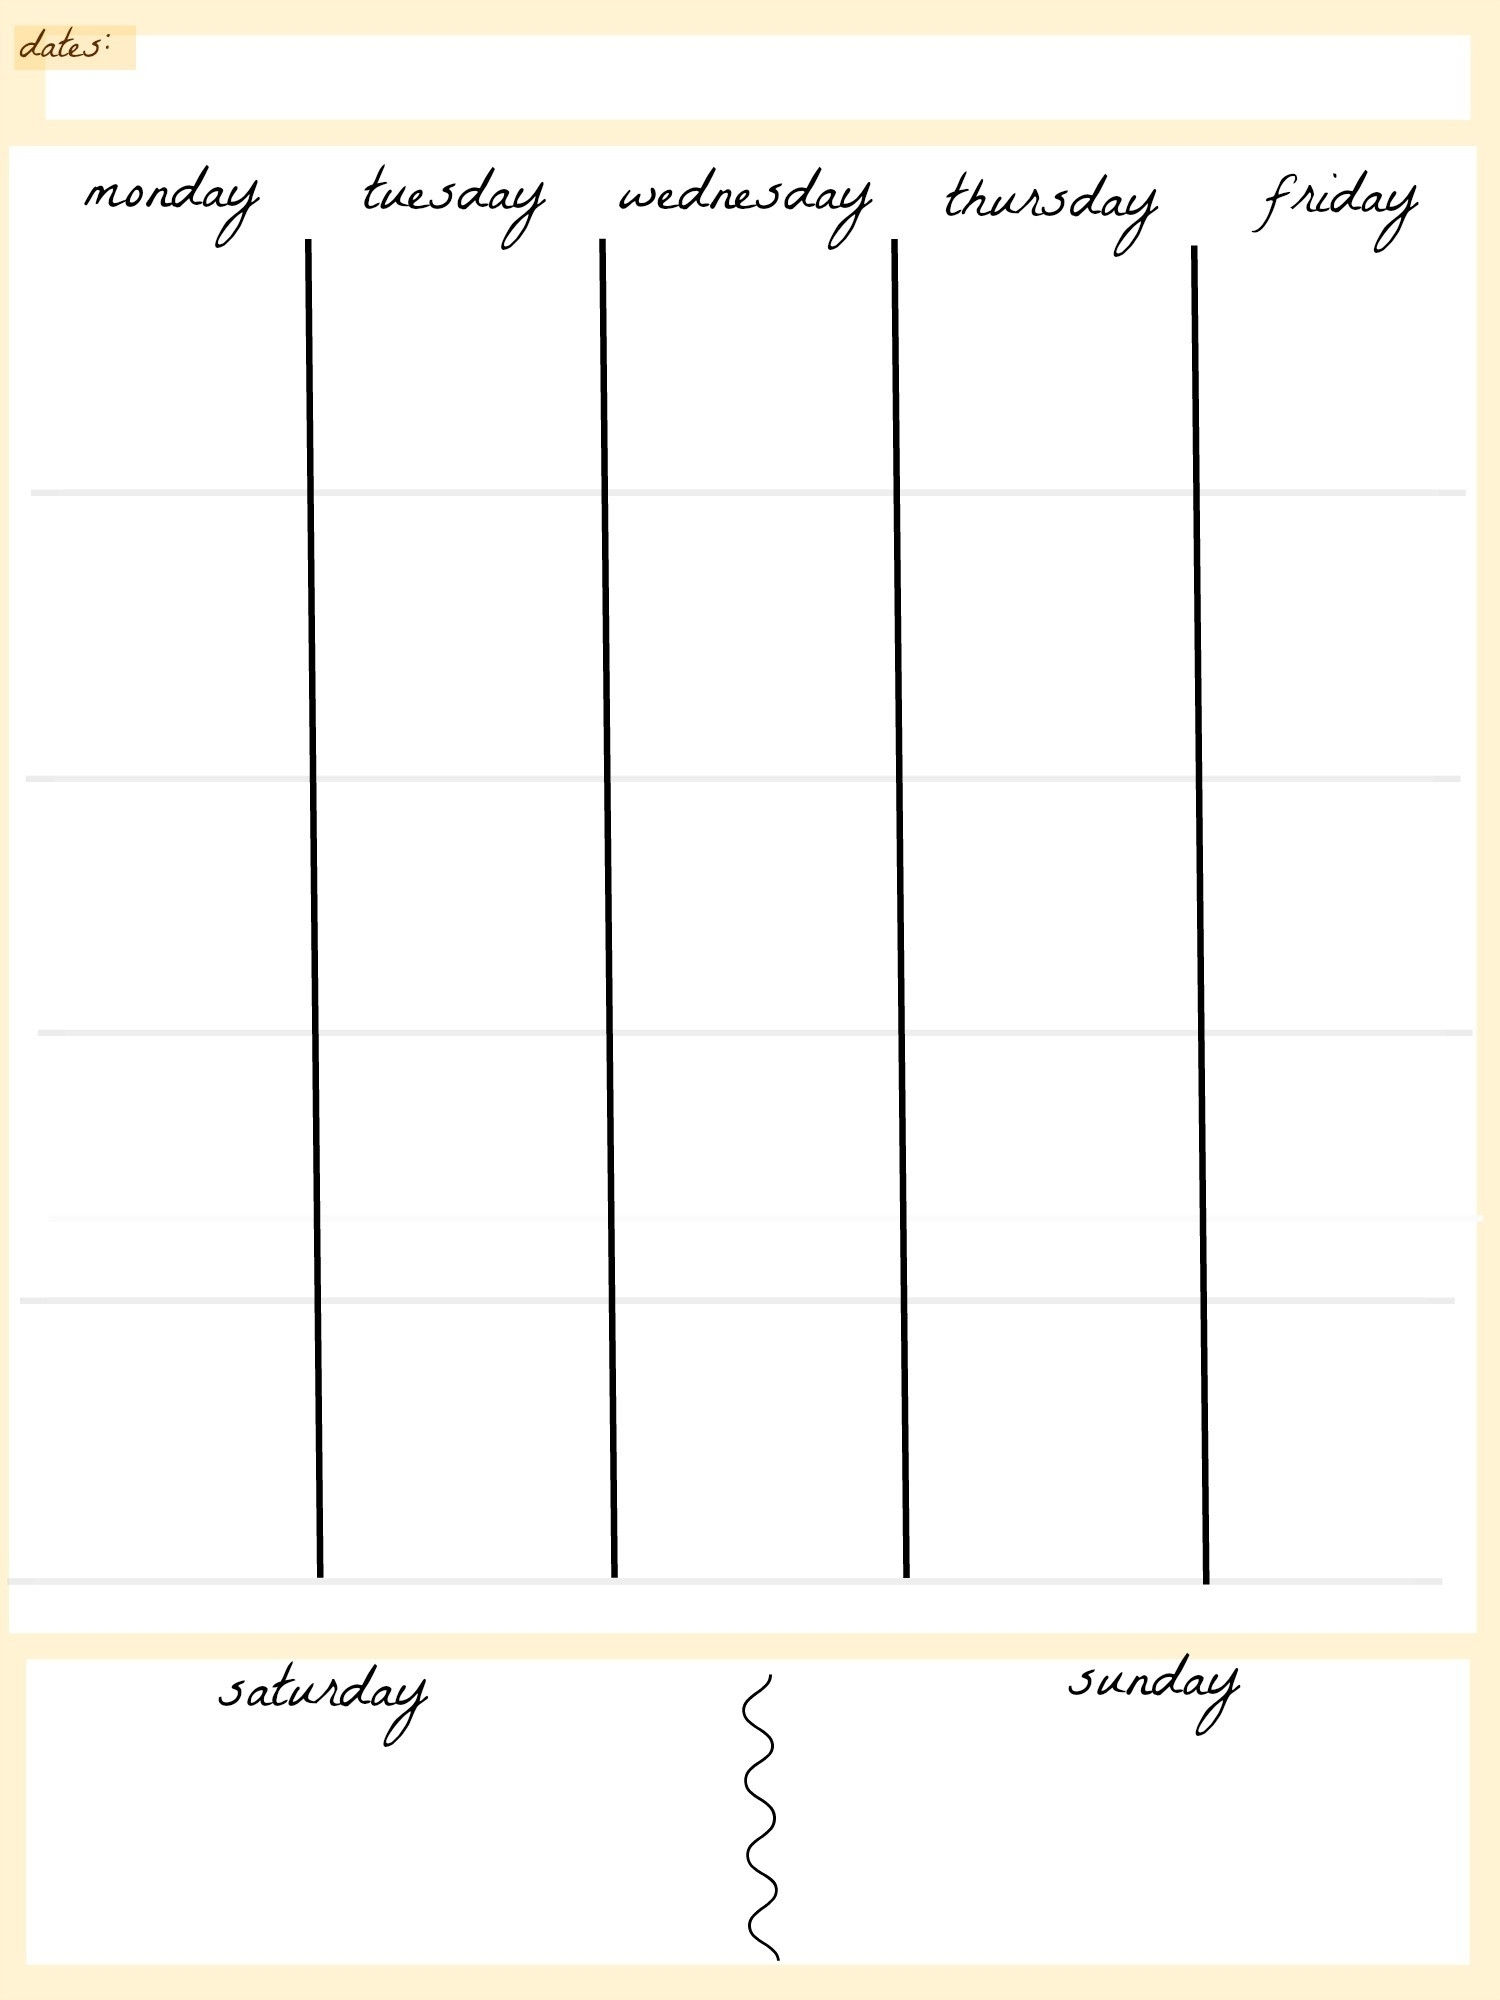 Blank Calendar Template 5 Day Week Weekly Calendar 5 Day Travel Cal1 pertaining to Blank Calendar Template 5 Day